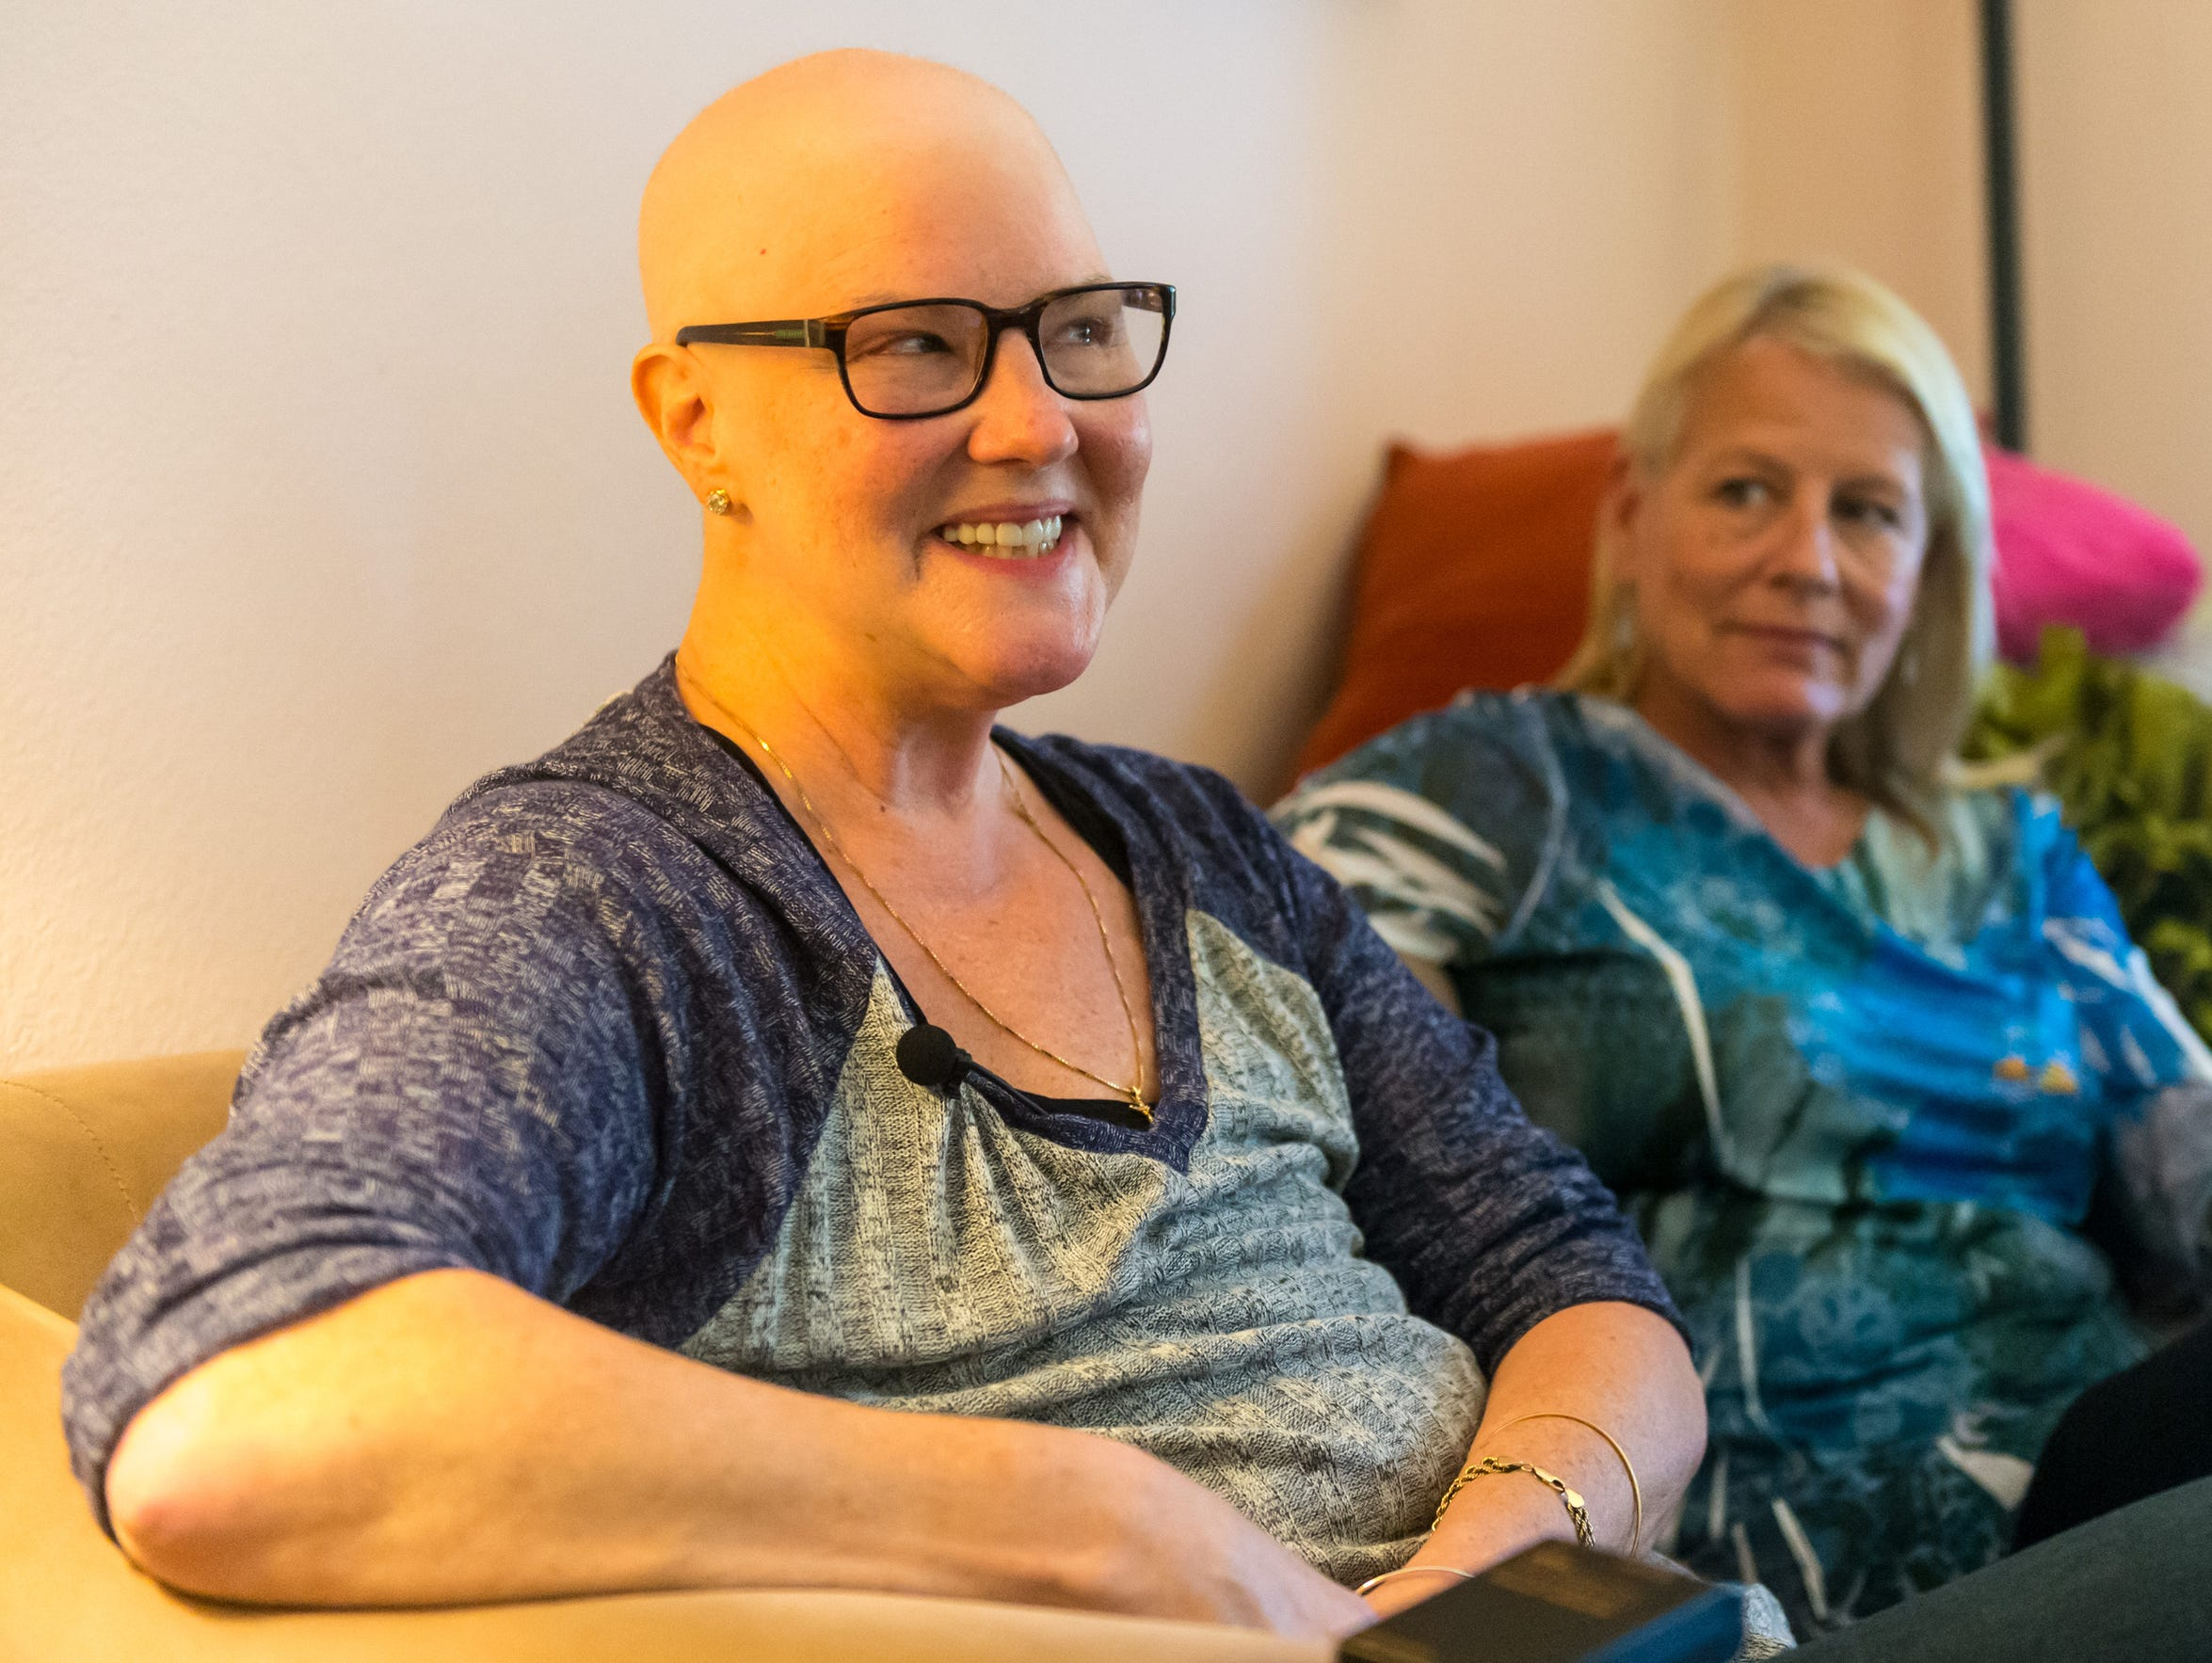 Lisa Welling, shares her experience with breast cancer